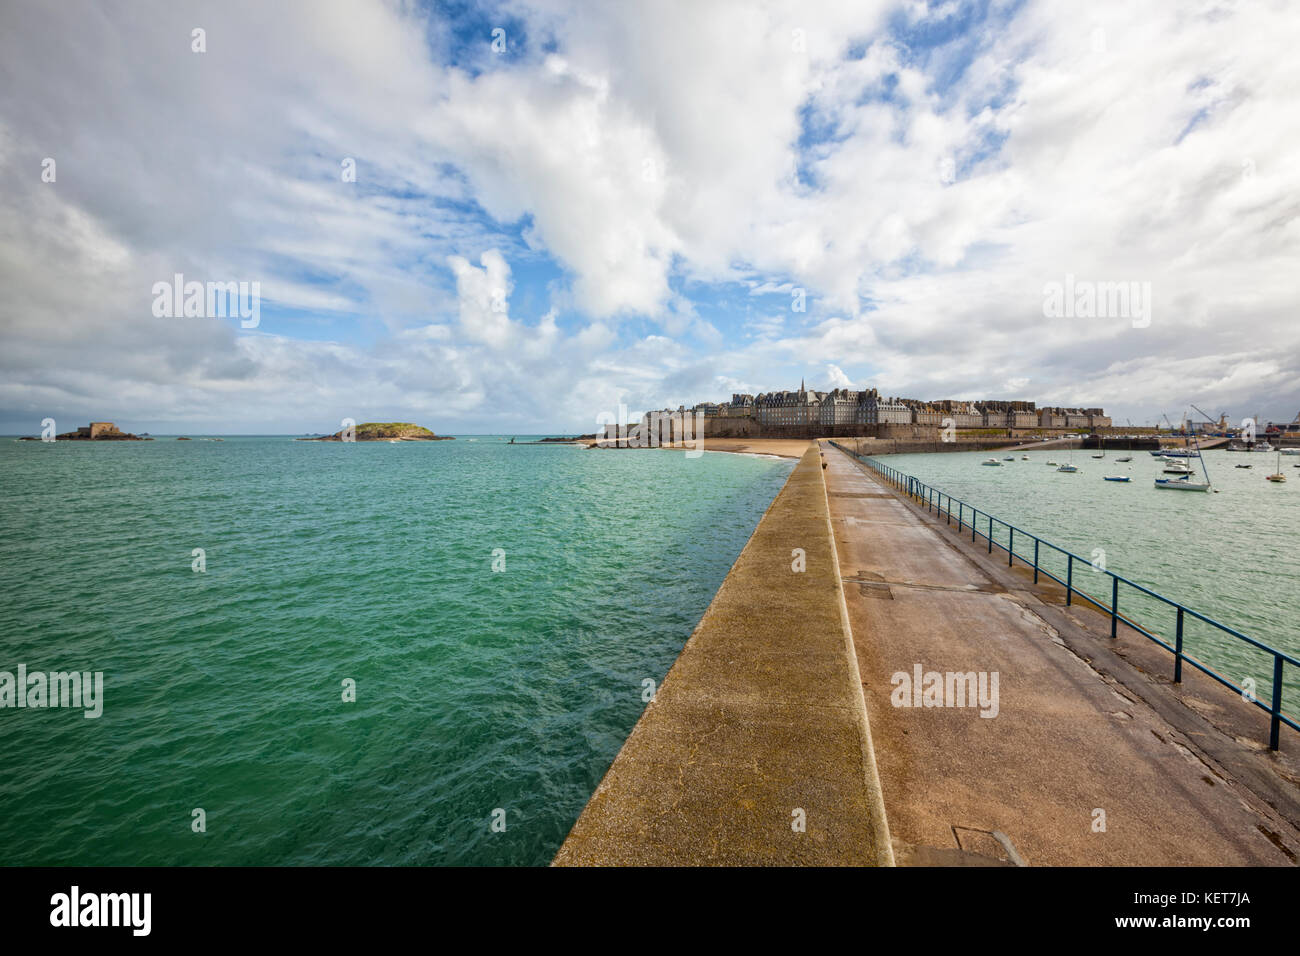 Intra Muros, the walled City of Saint-Malo, Brittany, France - Stock Image